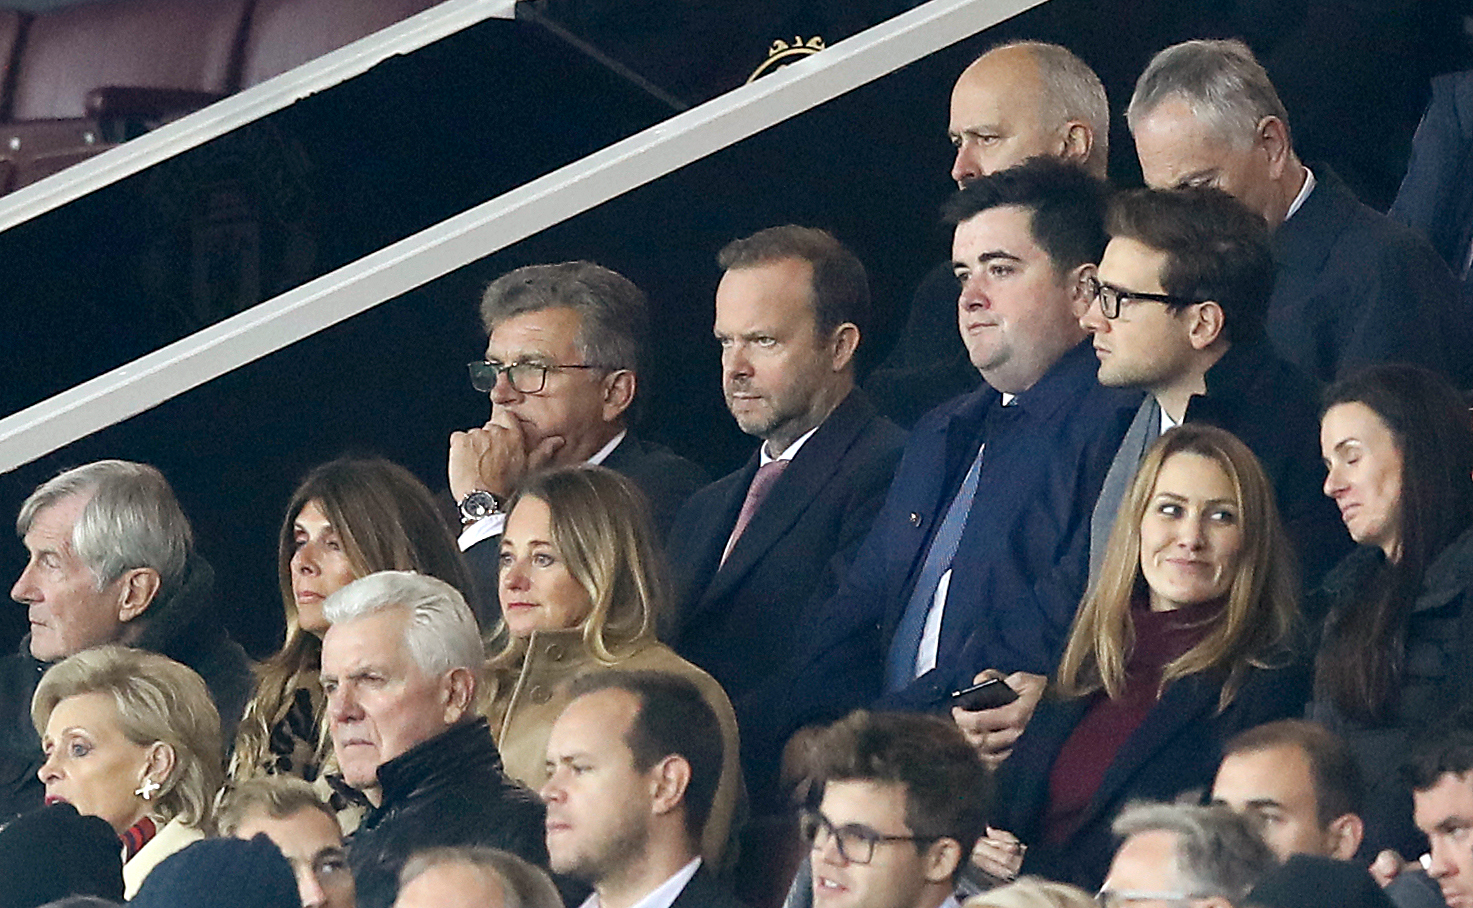 Ed Woodward centre has a decision to make over over the next permanent Manchester United manager